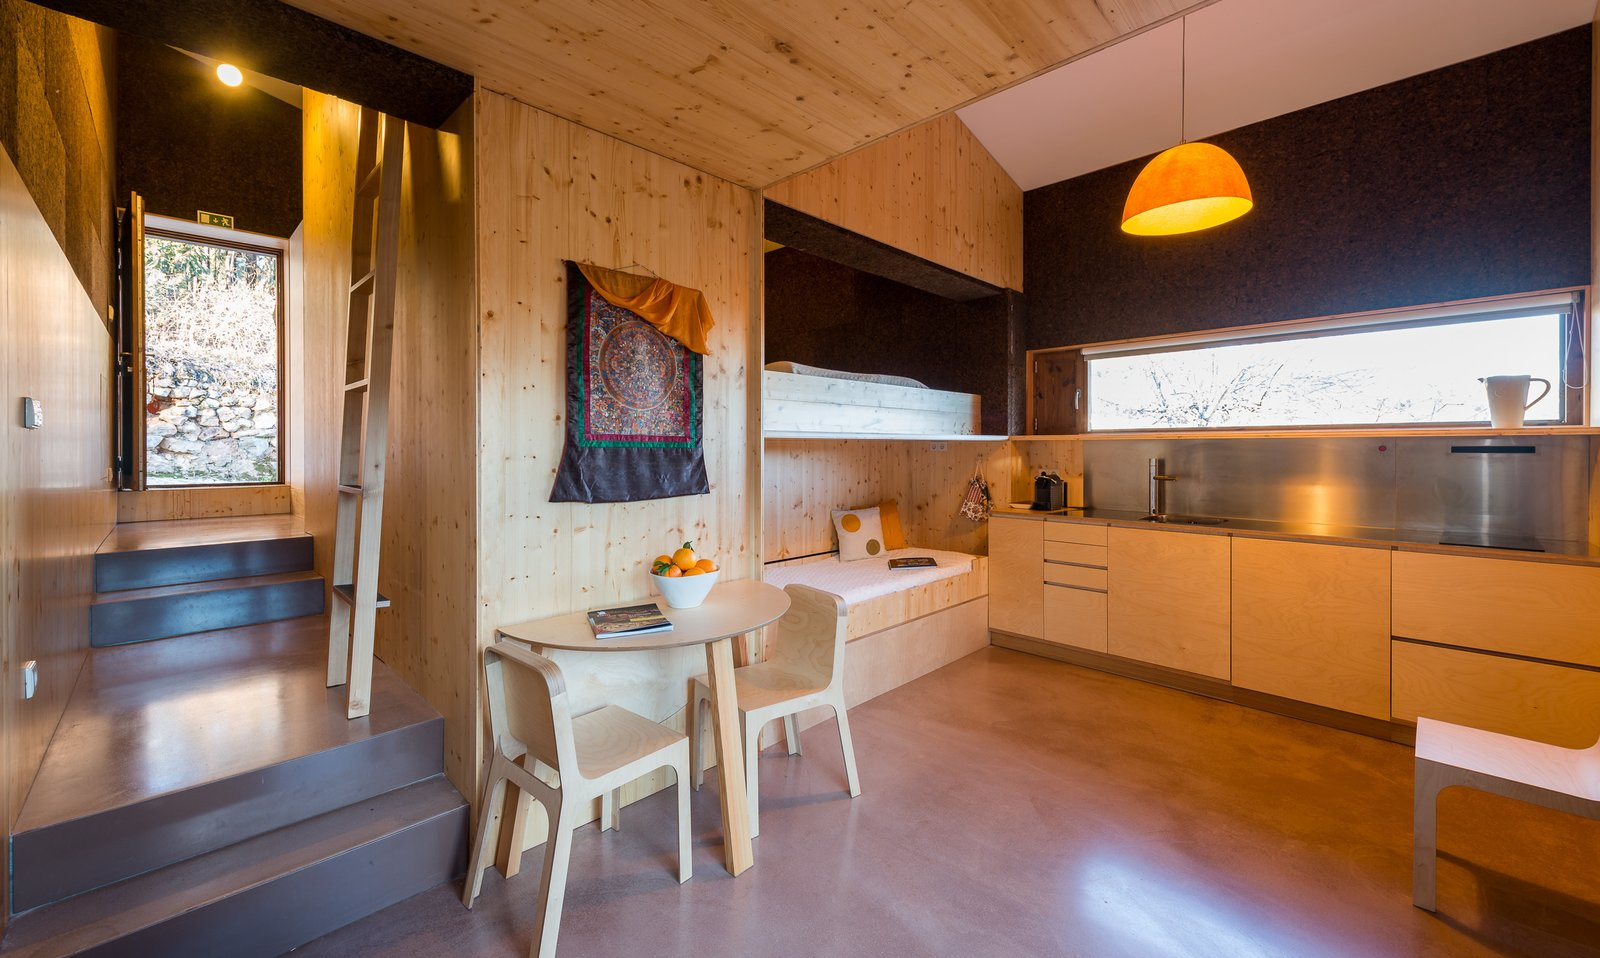 Kitchen, Metal Counter, Open Cabinet, Wood Cabinet, Pendant Lighting, Ceiling Lighting, Drop In Sink, and Metal Backsplashe  Photo 14 of 16 in Stay in a Tiny, Eco-Friendly House in a Portuguese Schist Village